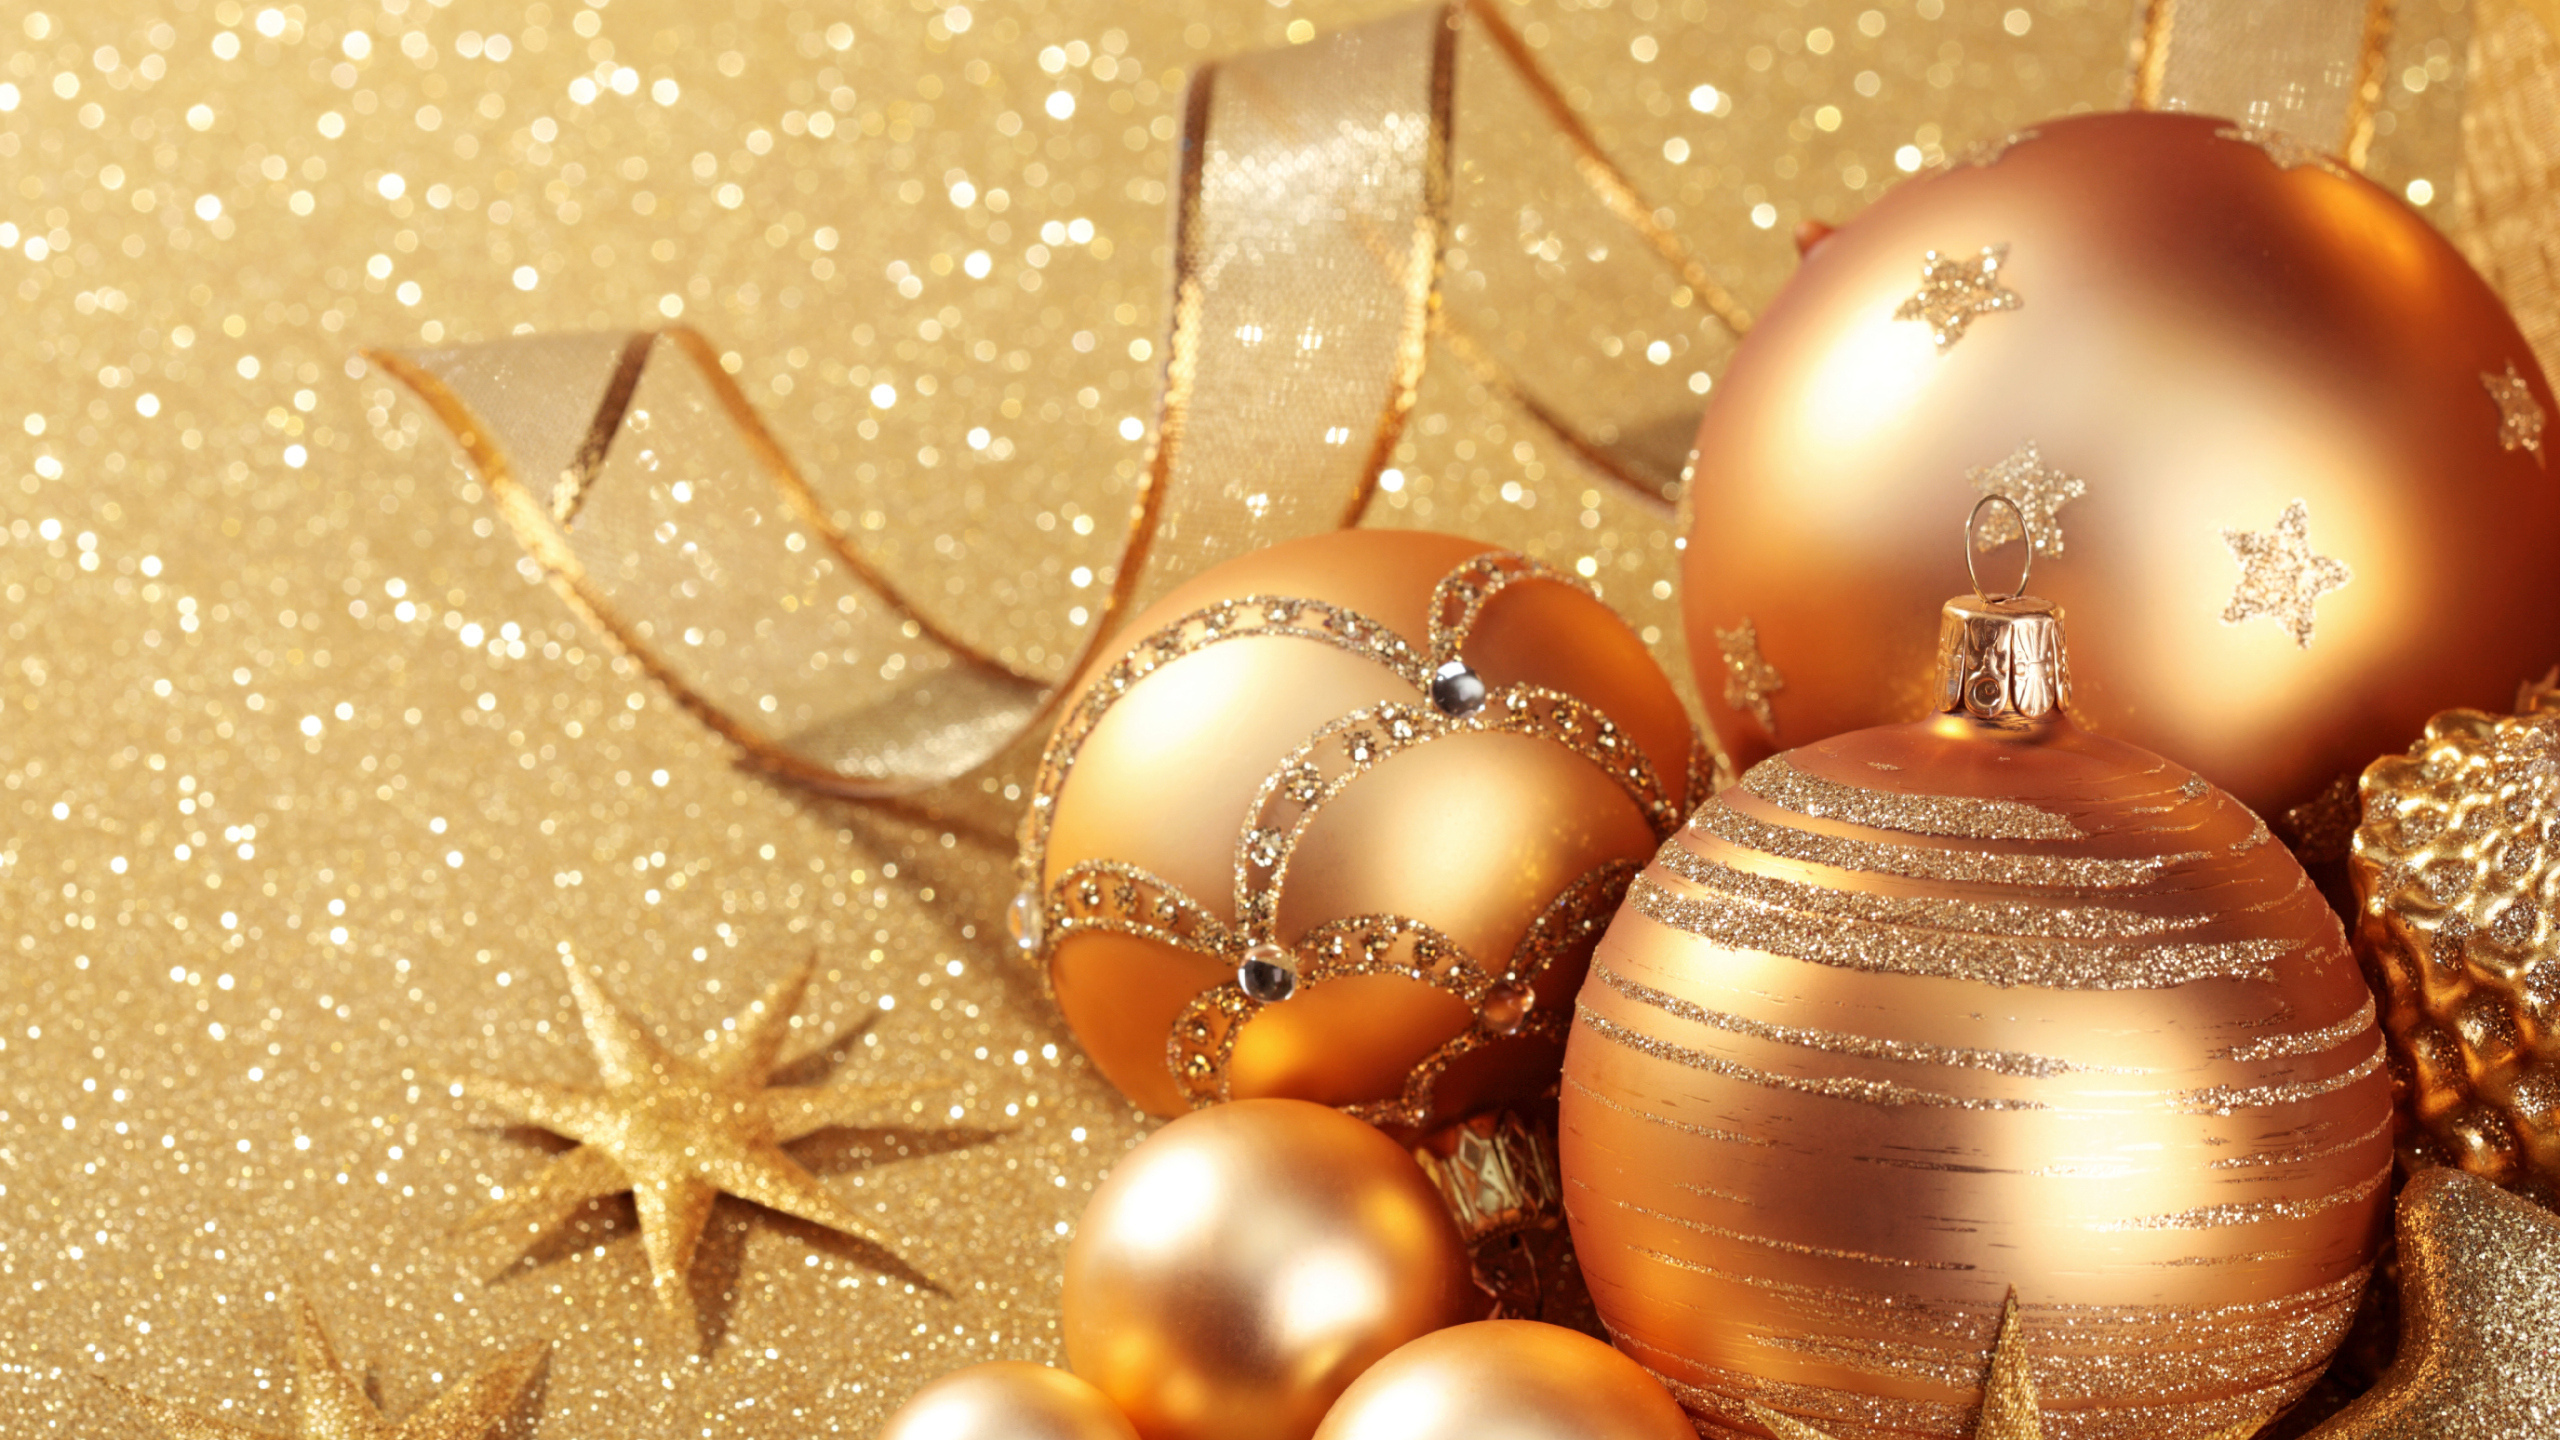 christmas wallpaper images - HD 2560×1440